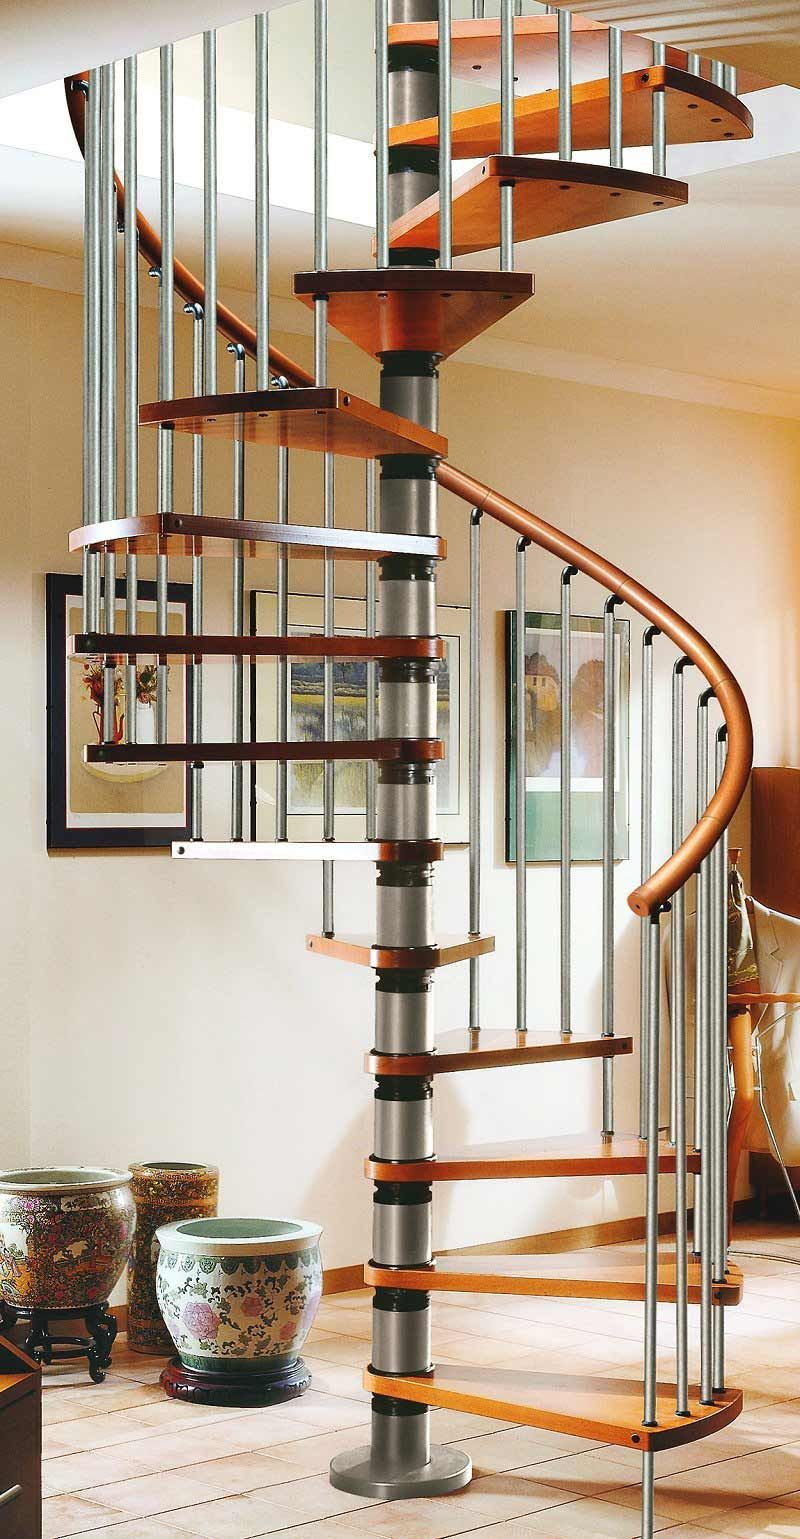 Gamia Deluxe Silver Spiral Staircase 1400Mm Dia With Real Wood | Deluxe Stair And Railing | Stainless Steel Stairs | Houzz | Barclay Hollywood | Mg Alloy | Interior Stair